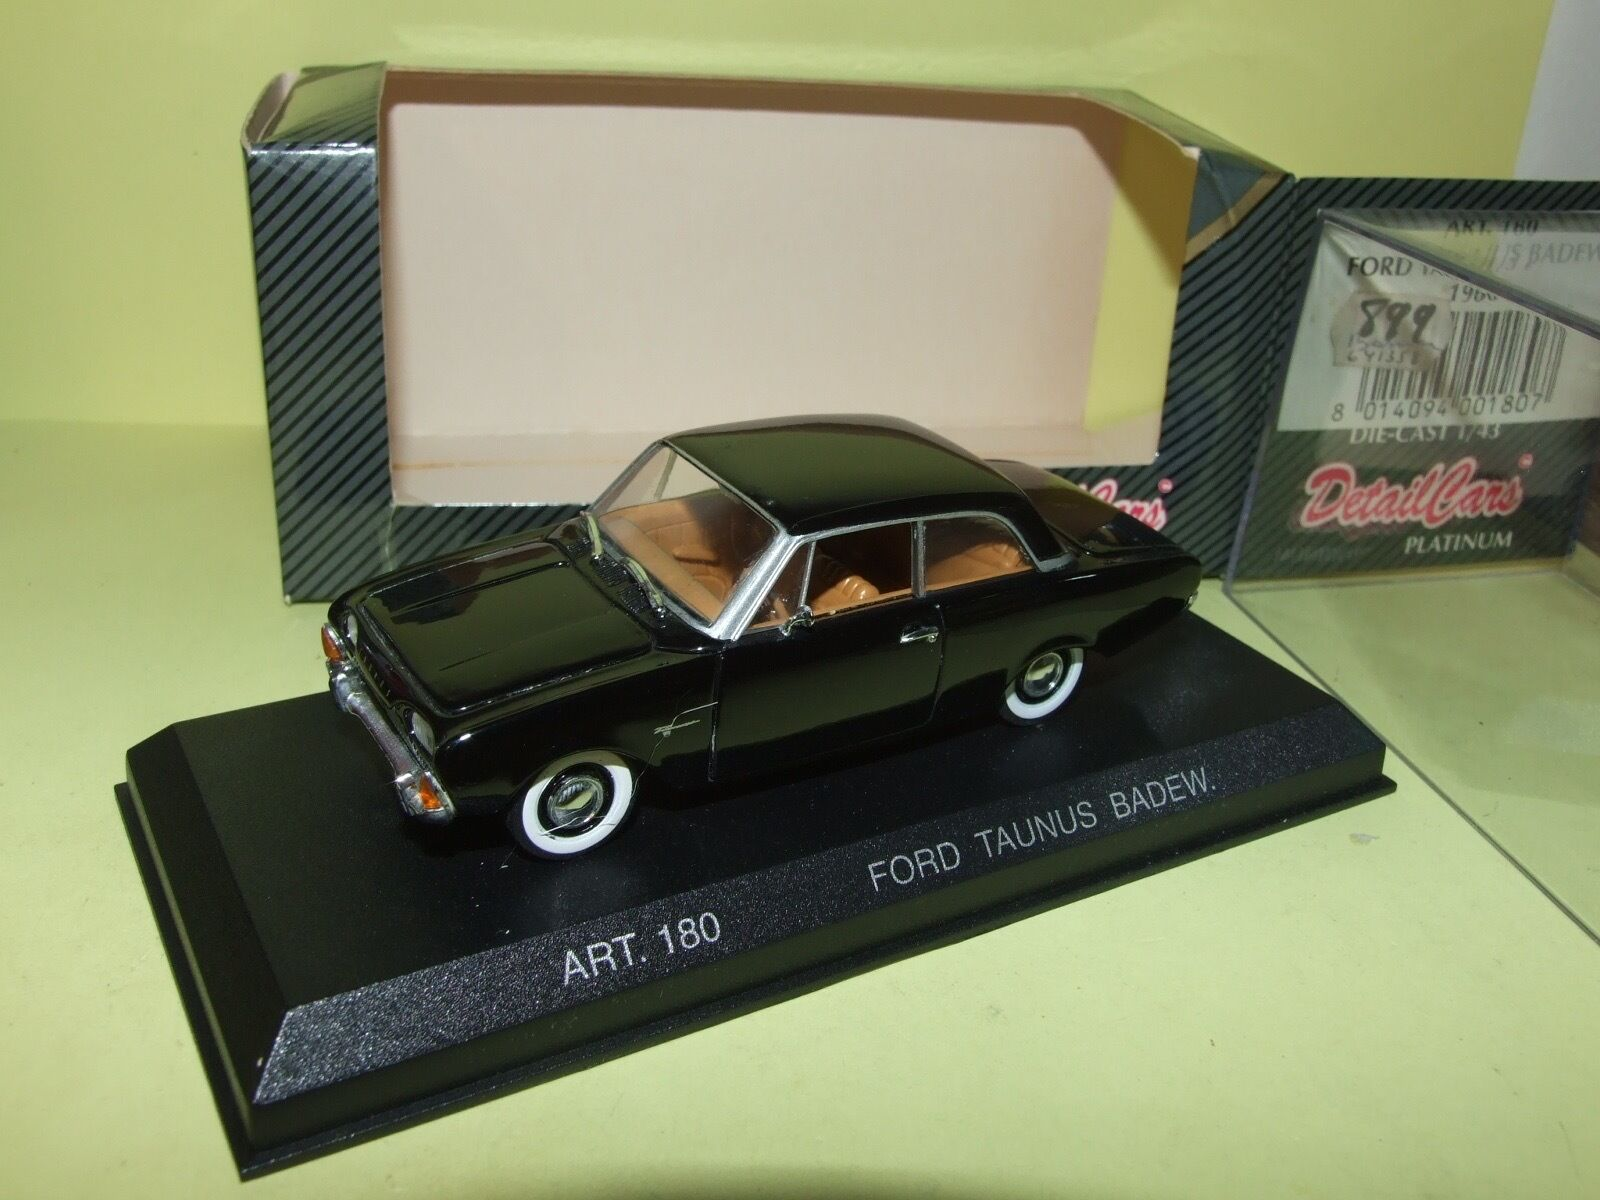 FORD TAUNIS BADEW 1960 black DETAILCARS 180 1 43